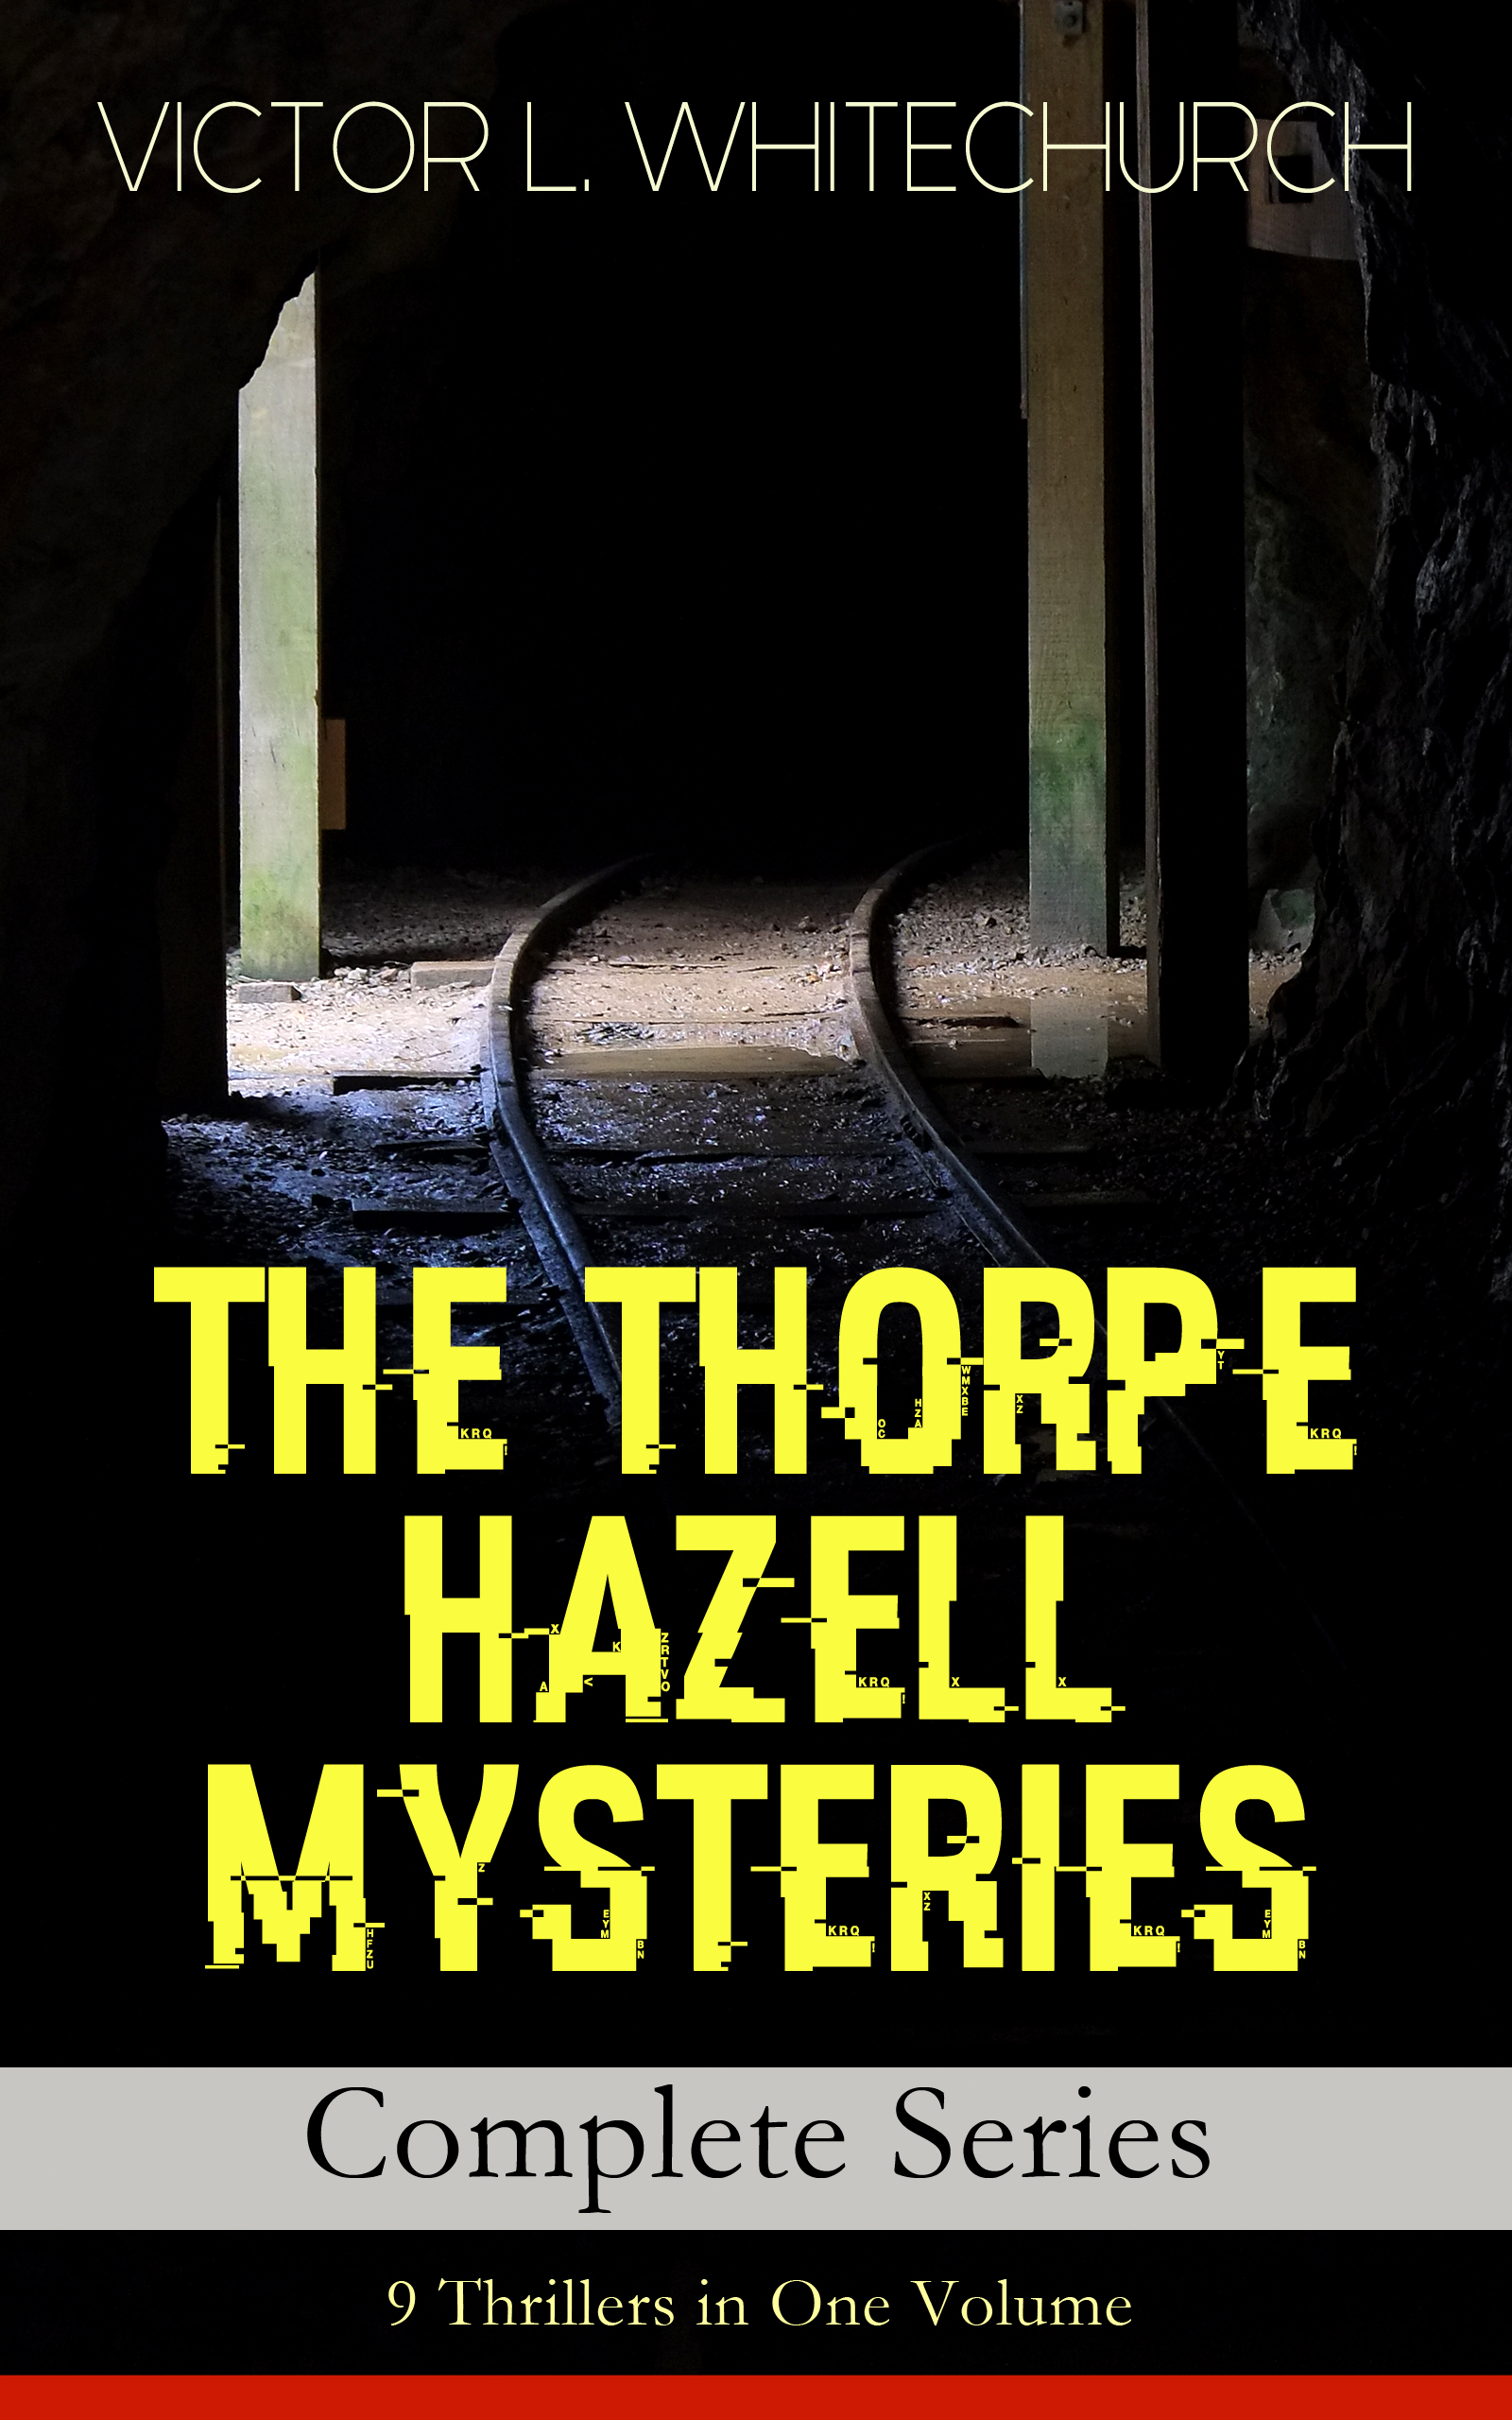 Victor L. Whitechurch THE THORPE HAZELL MYSTERIES – Complete Series: 9 Thrillers in One Volume